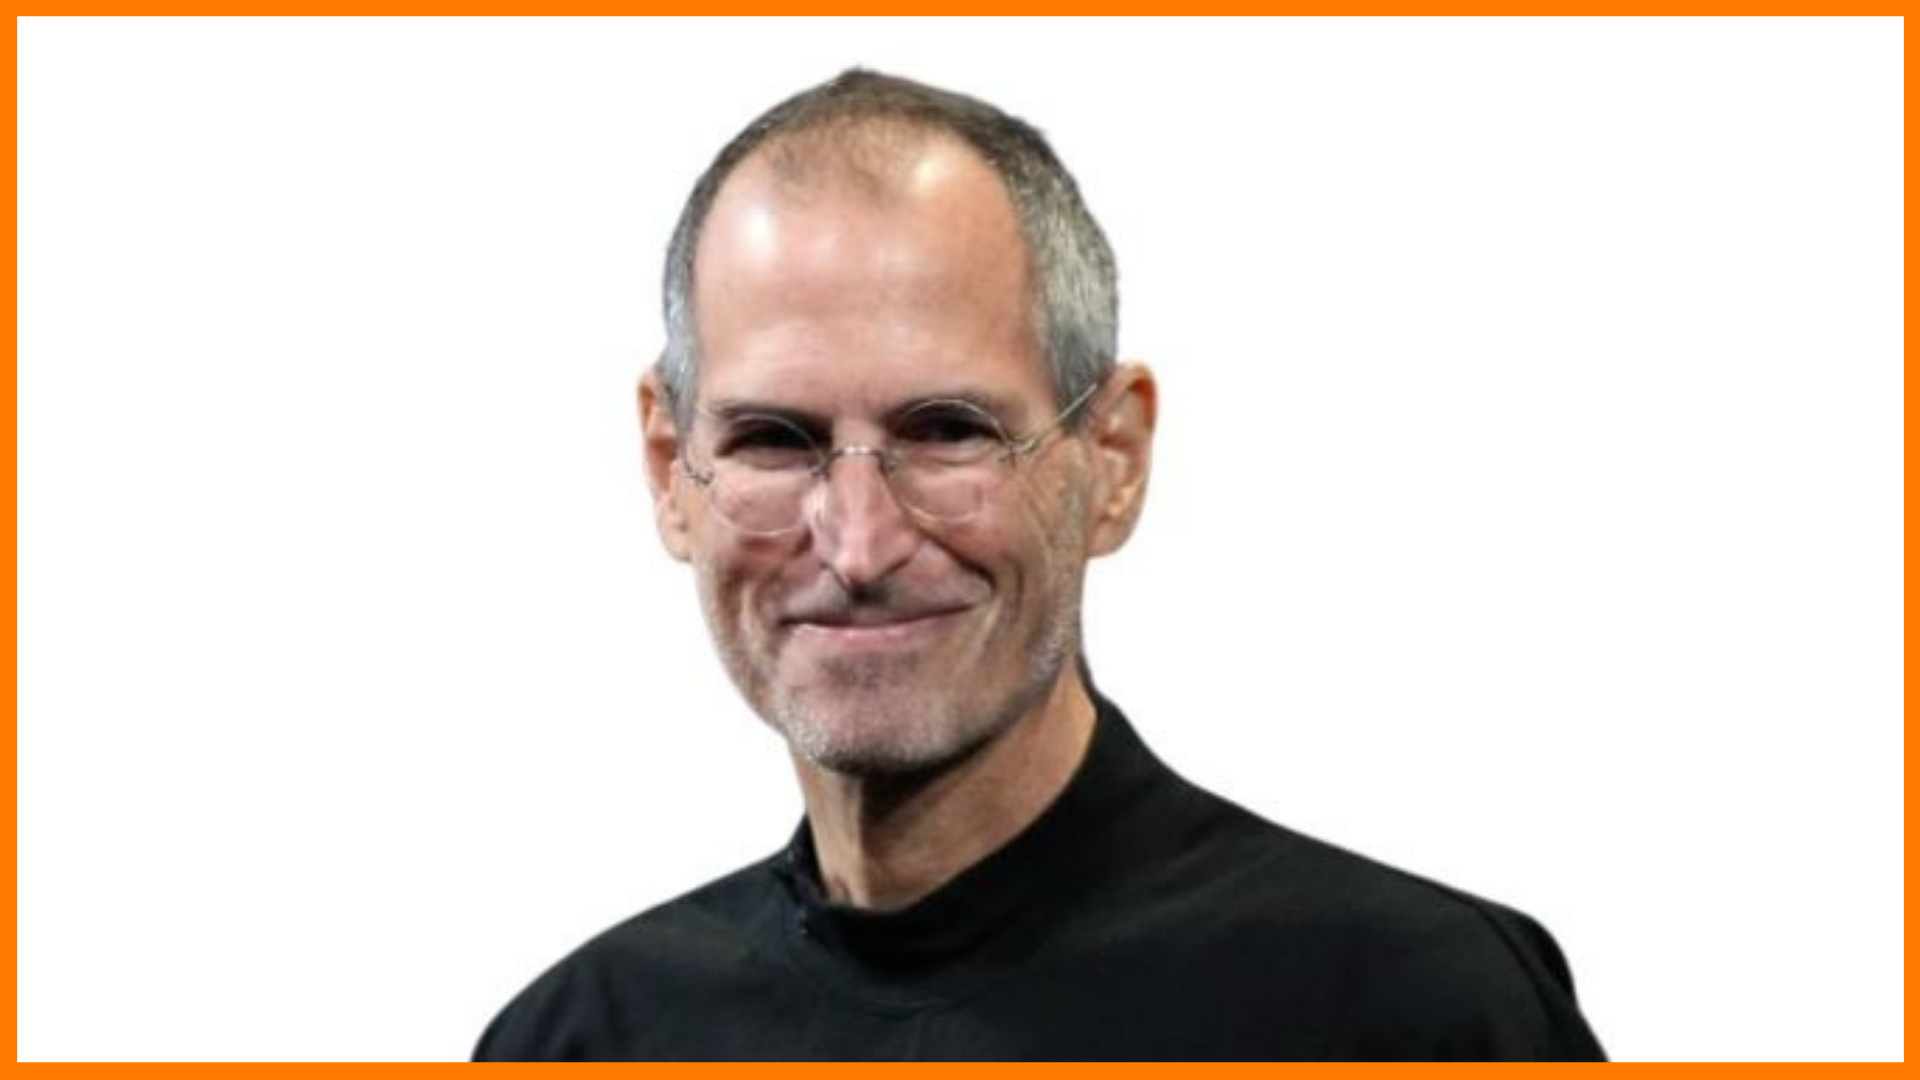 How Steve Jobs become such a Successful Entrepreneur?